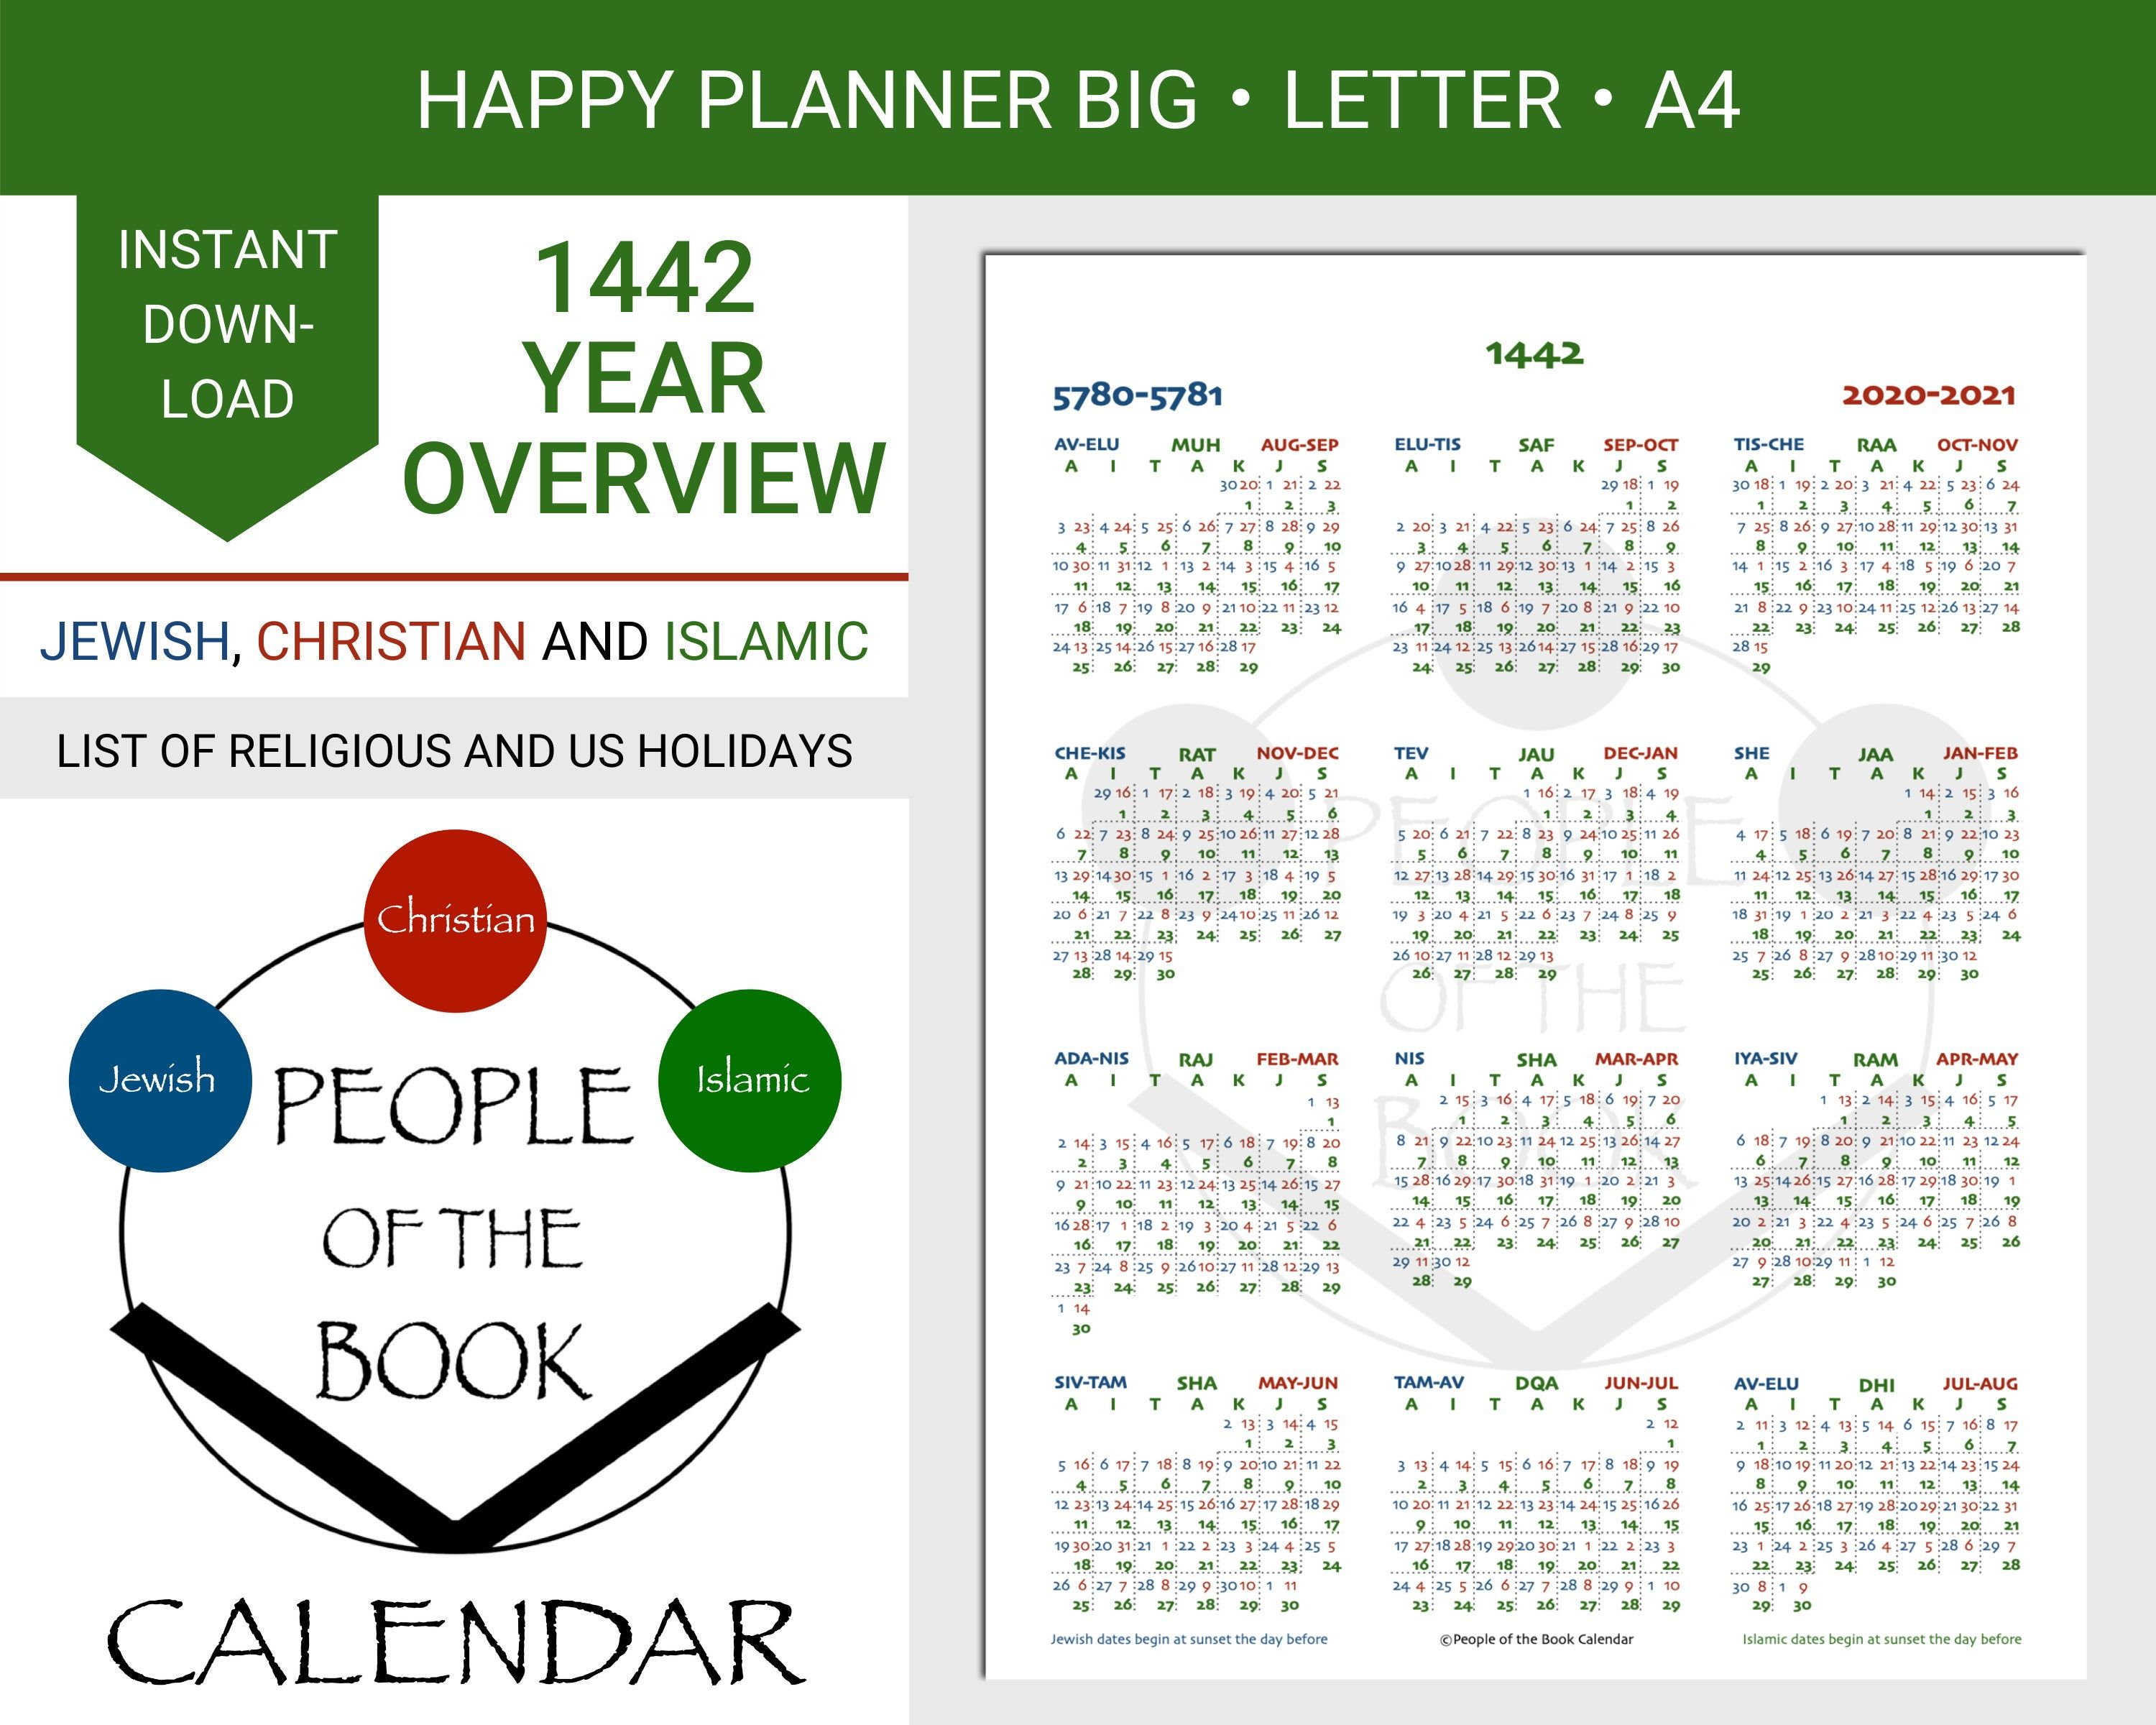 1442 Ah Islamic Hijri Year Overview People Of The Book Etsy In 2020 Book People Happy Planner Holiday Lettering